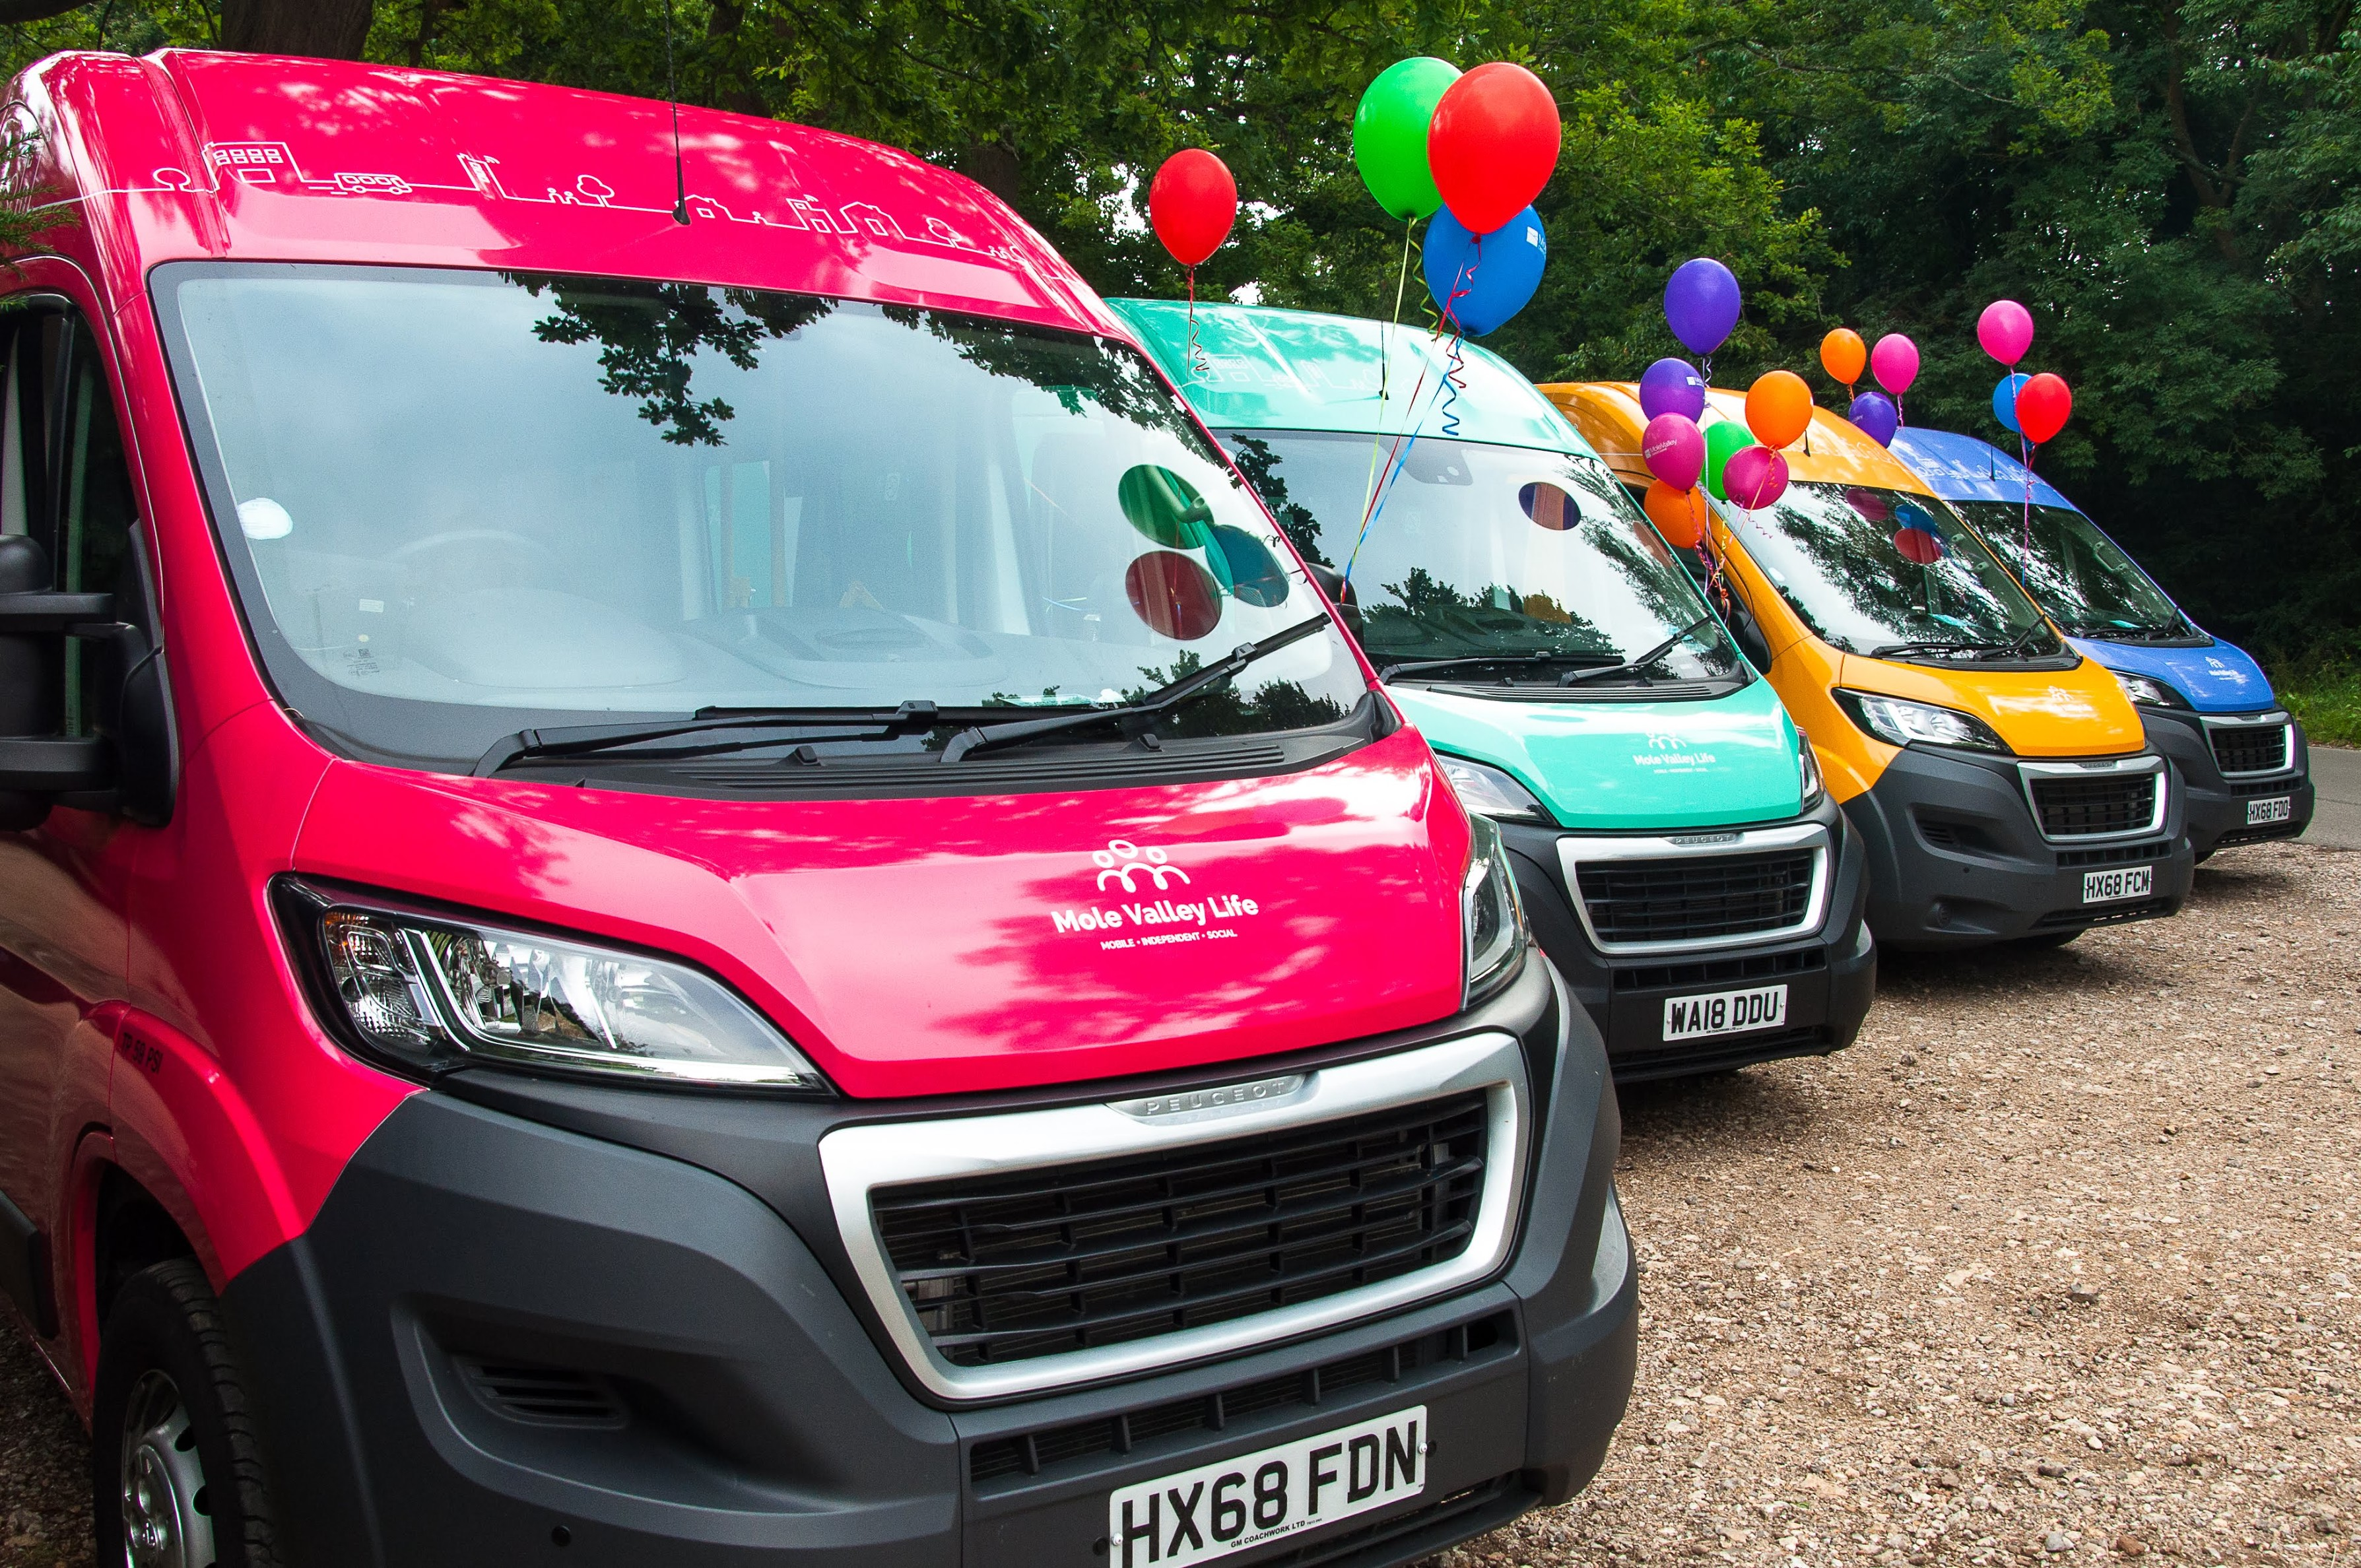 Mole Valley Life buses parked at Box Hill car park with balloons